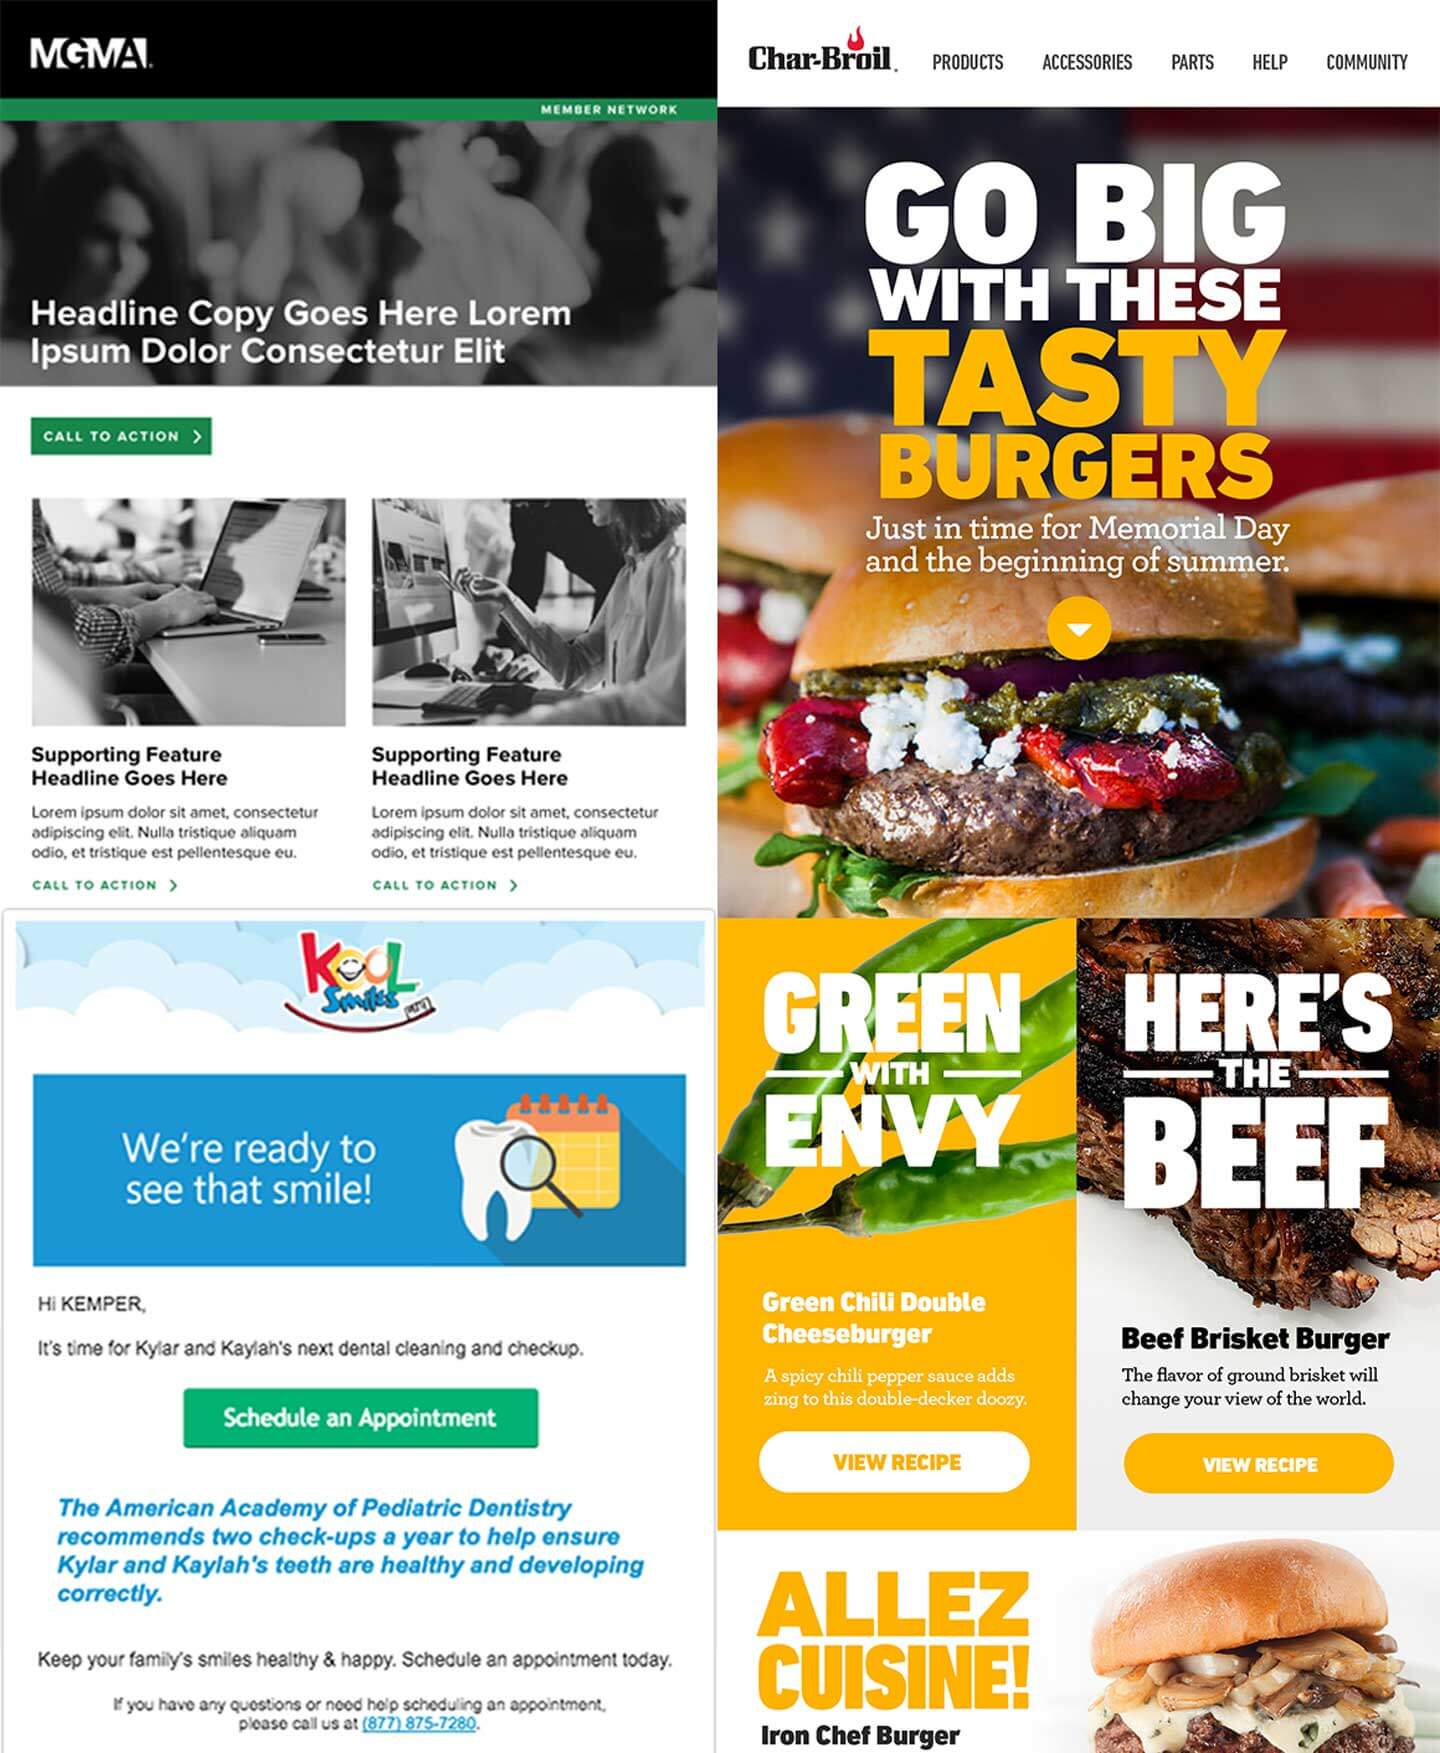 Three images consisting of MGM, Char-Broil, and Koolsmiles company home website